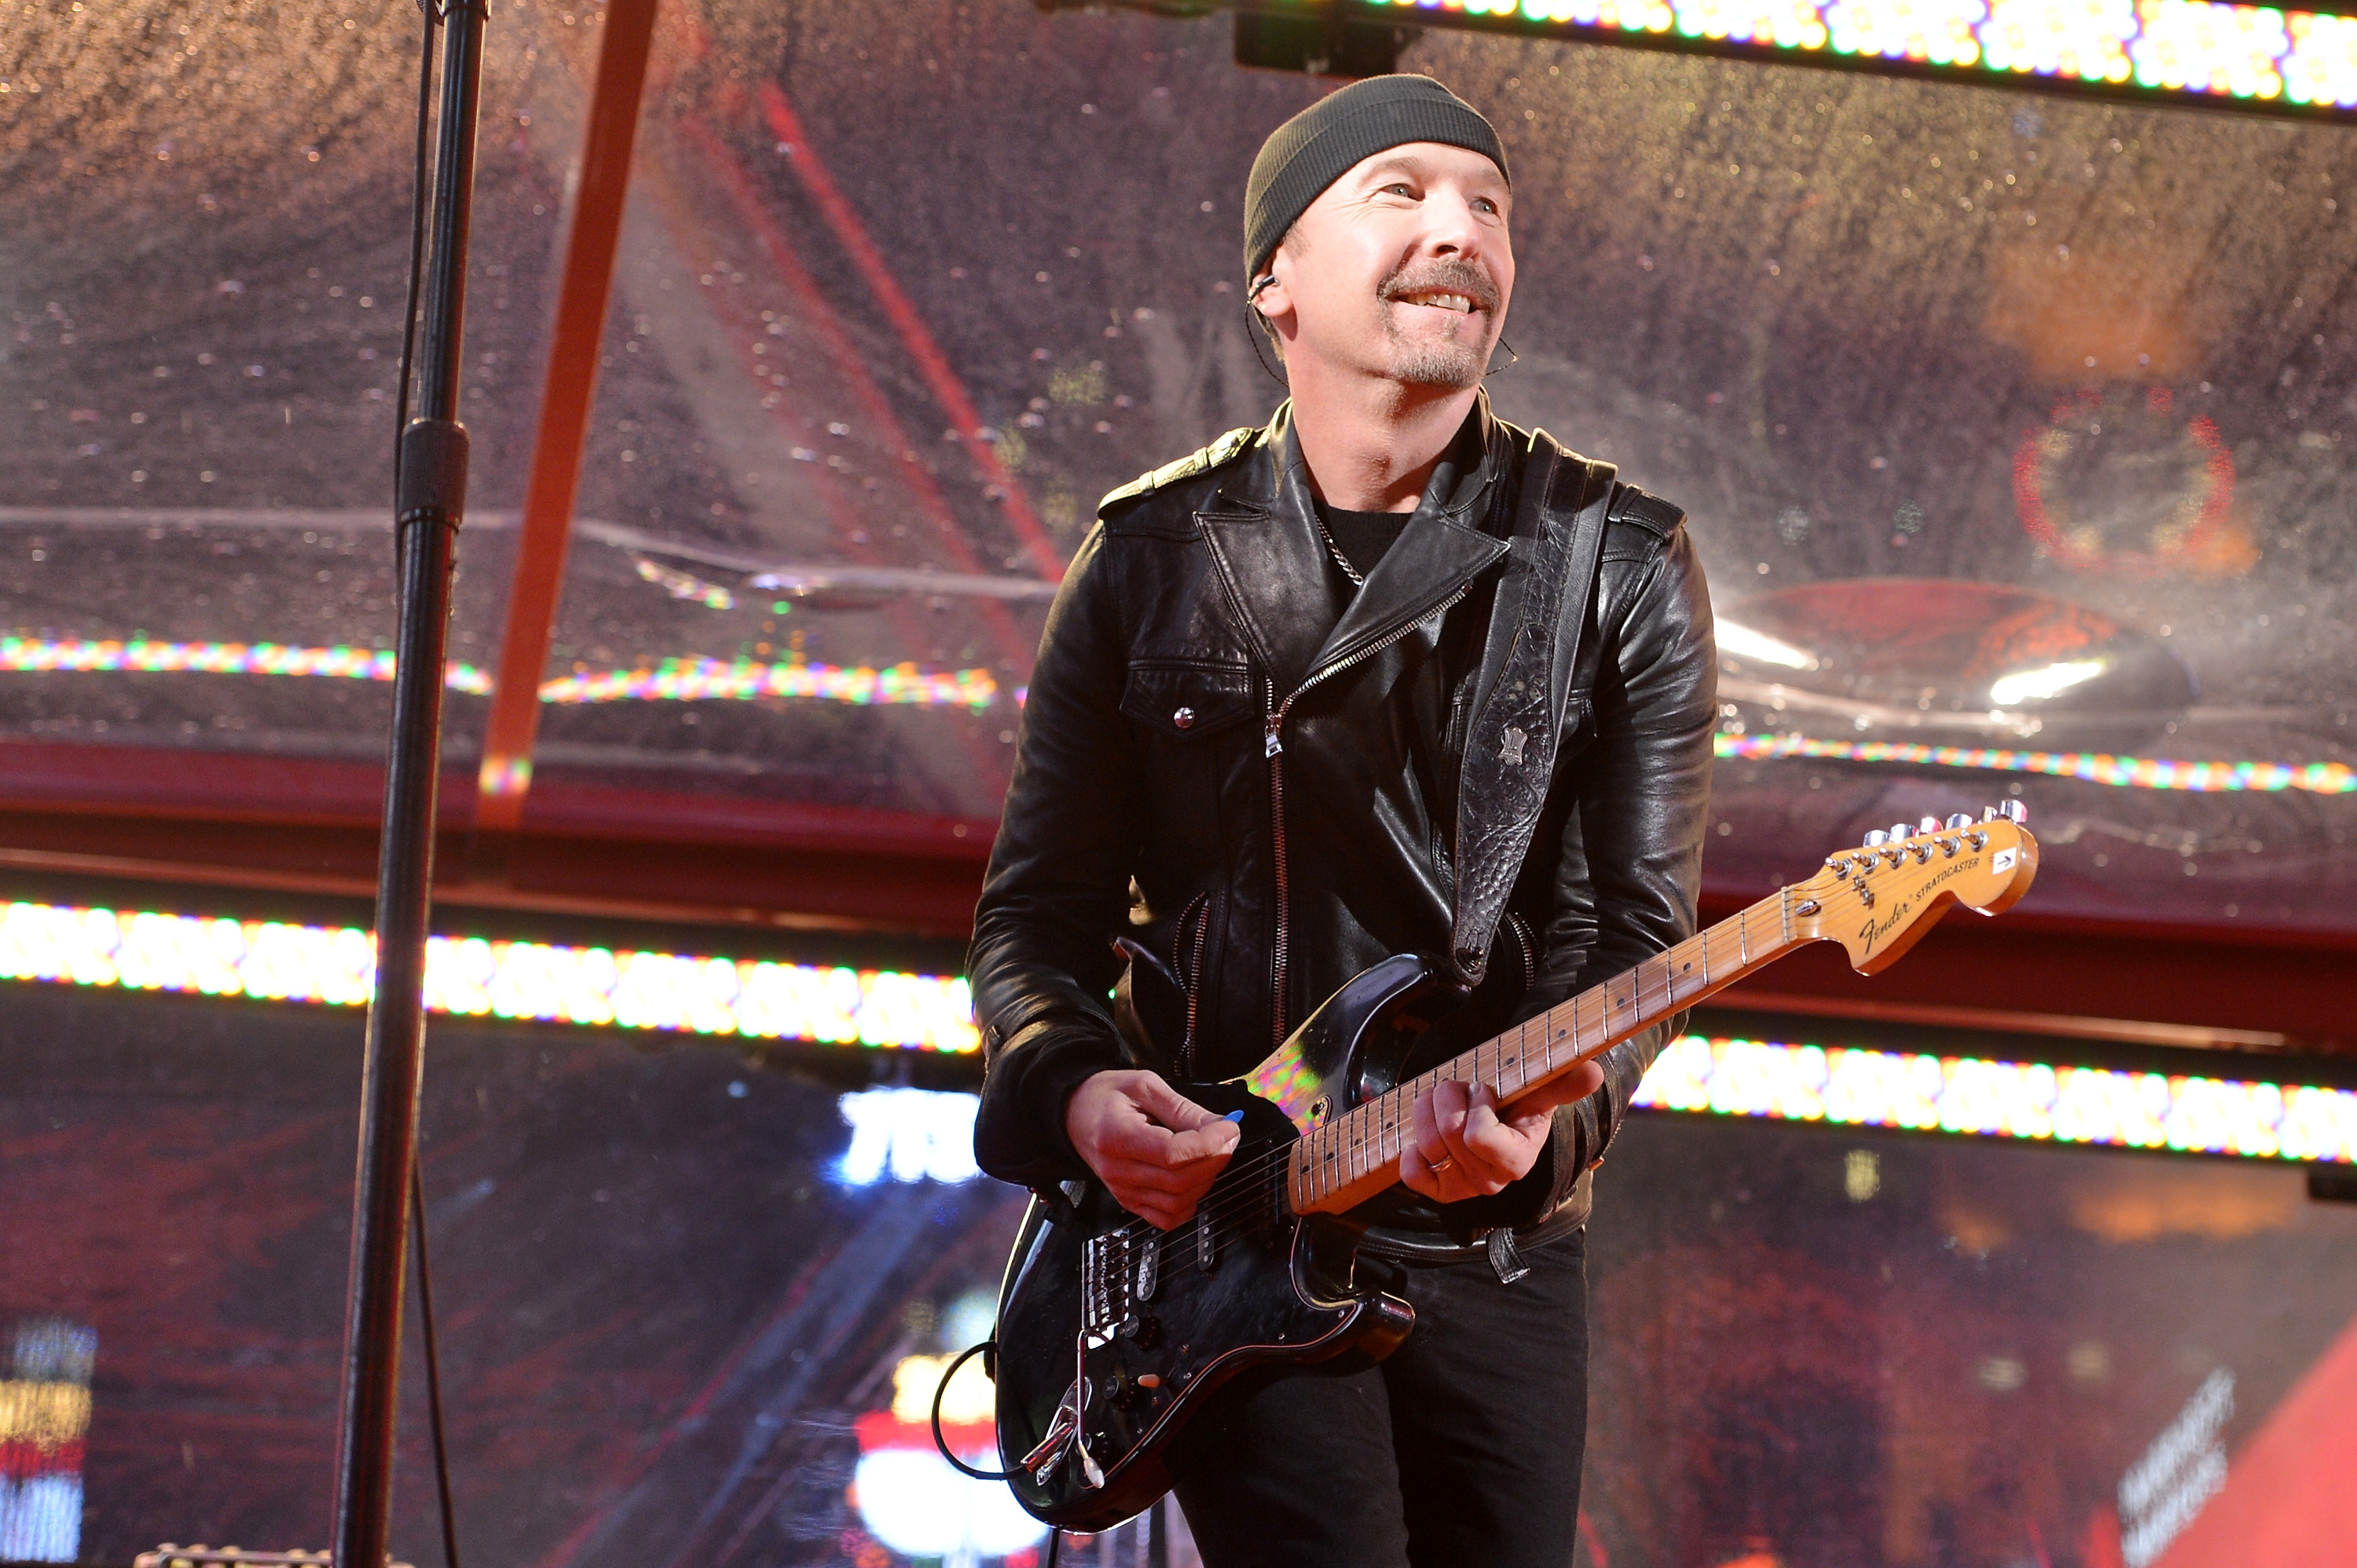 See U2's the Edge 'Geek Out' About New Custom Guitar